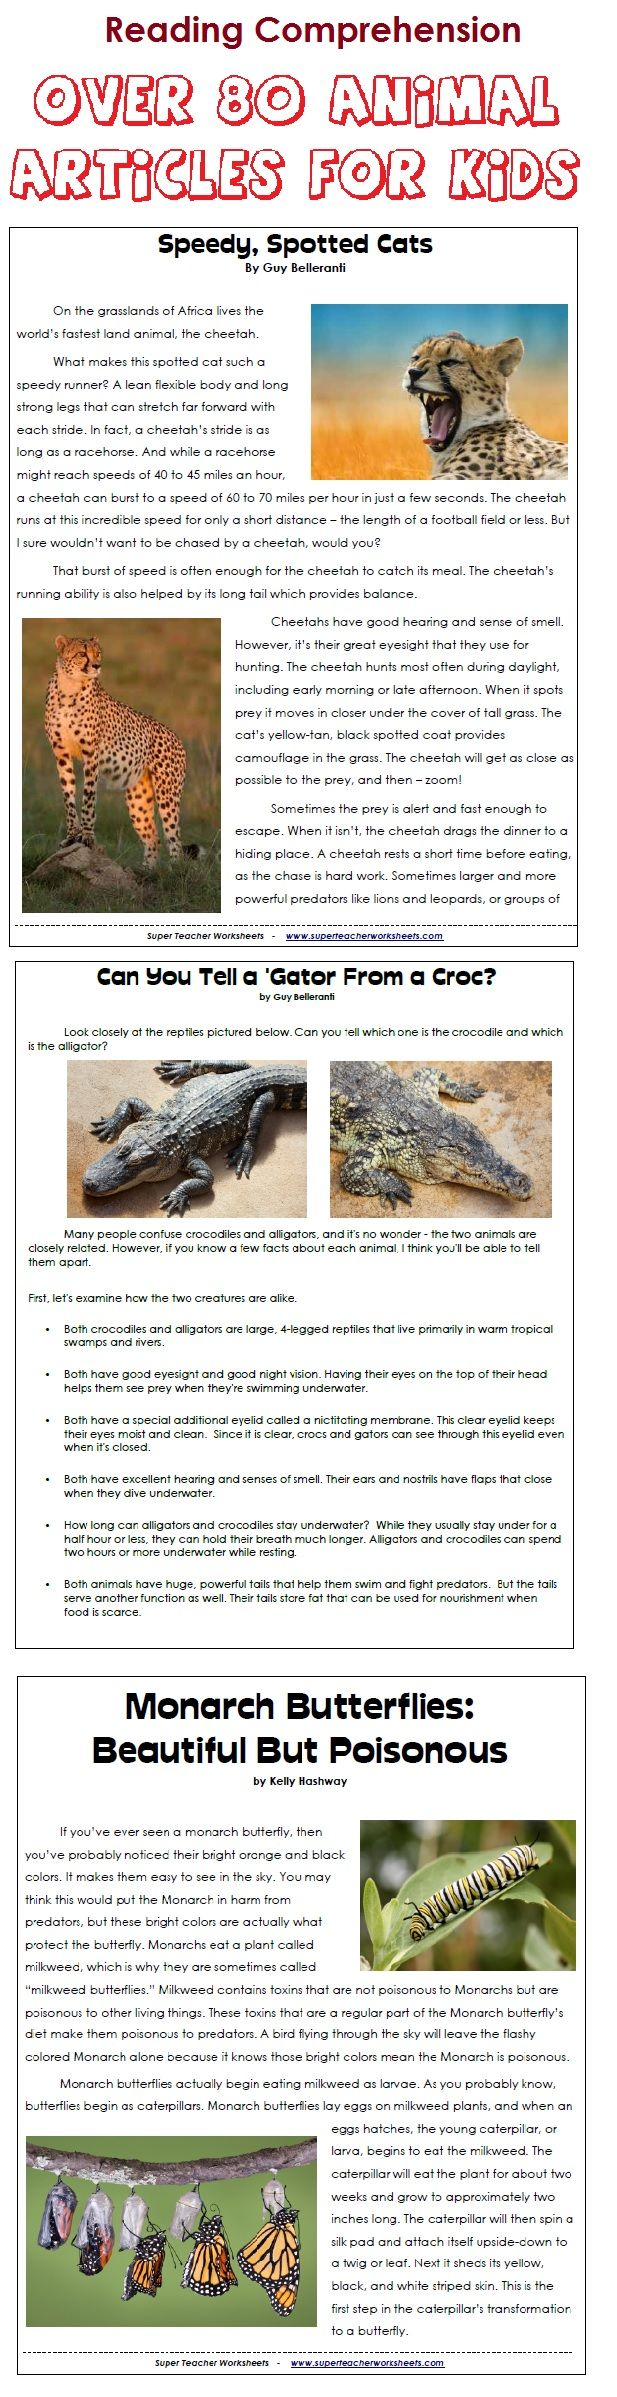 Download 80 printable animal articles with reading comprehension download 80 printable animal articles with reading comprehension questions fandeluxe Choice Image